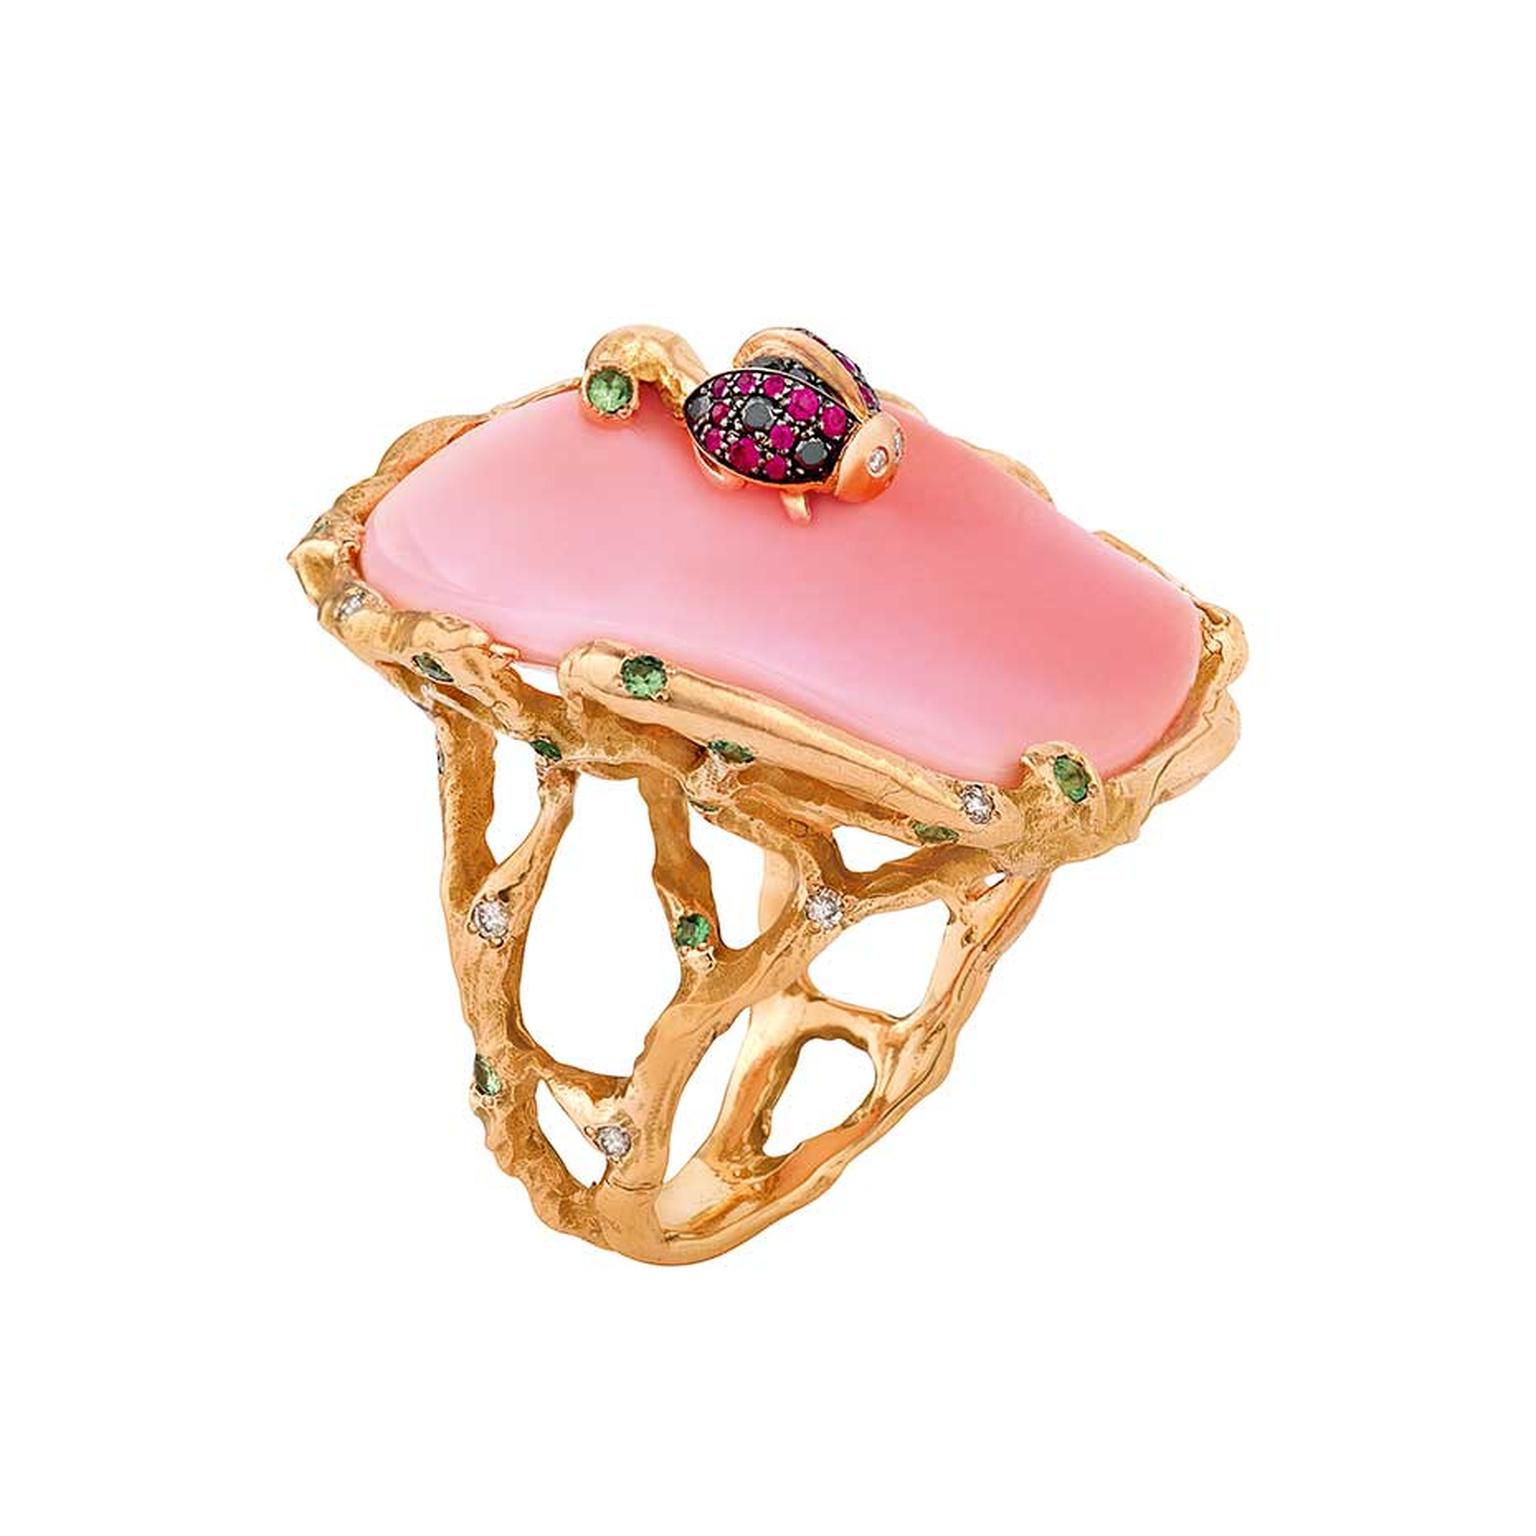 Christina Debs ring set with a conch shell and white diamonds, topped with a gem-set pink gold ladybird, from the Mother Nature collection.